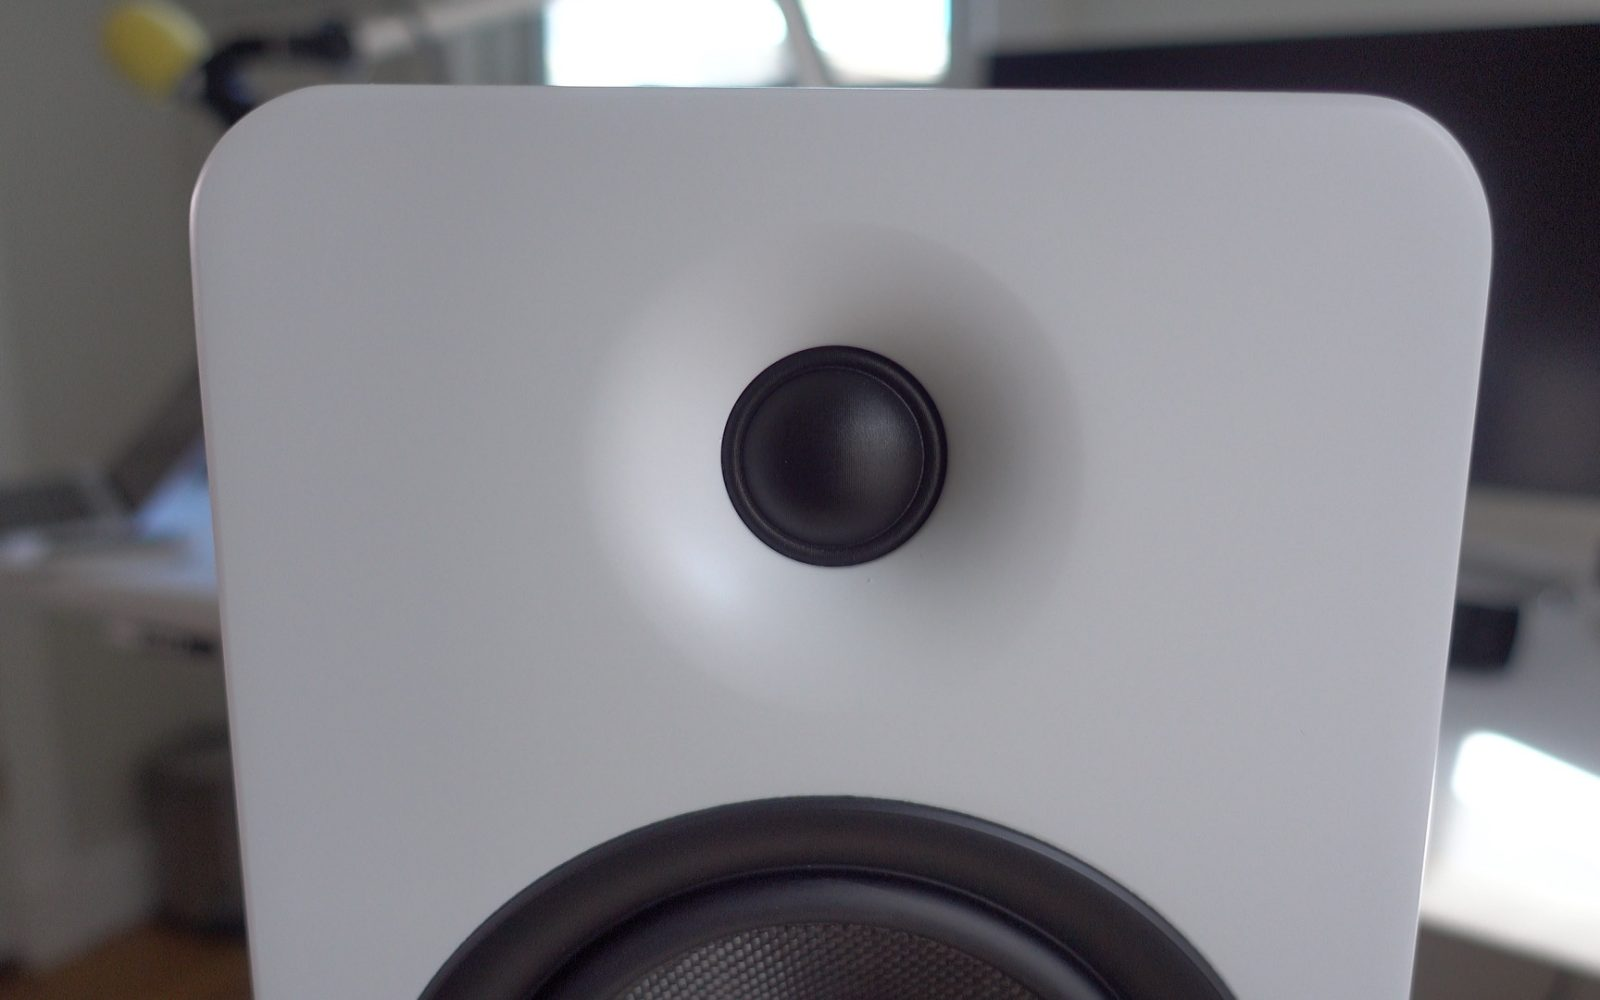 Hands On Kantos YU5 Powered Bookshelf Speakers Deliver Big Sound And Flexible Connectivity Options Video